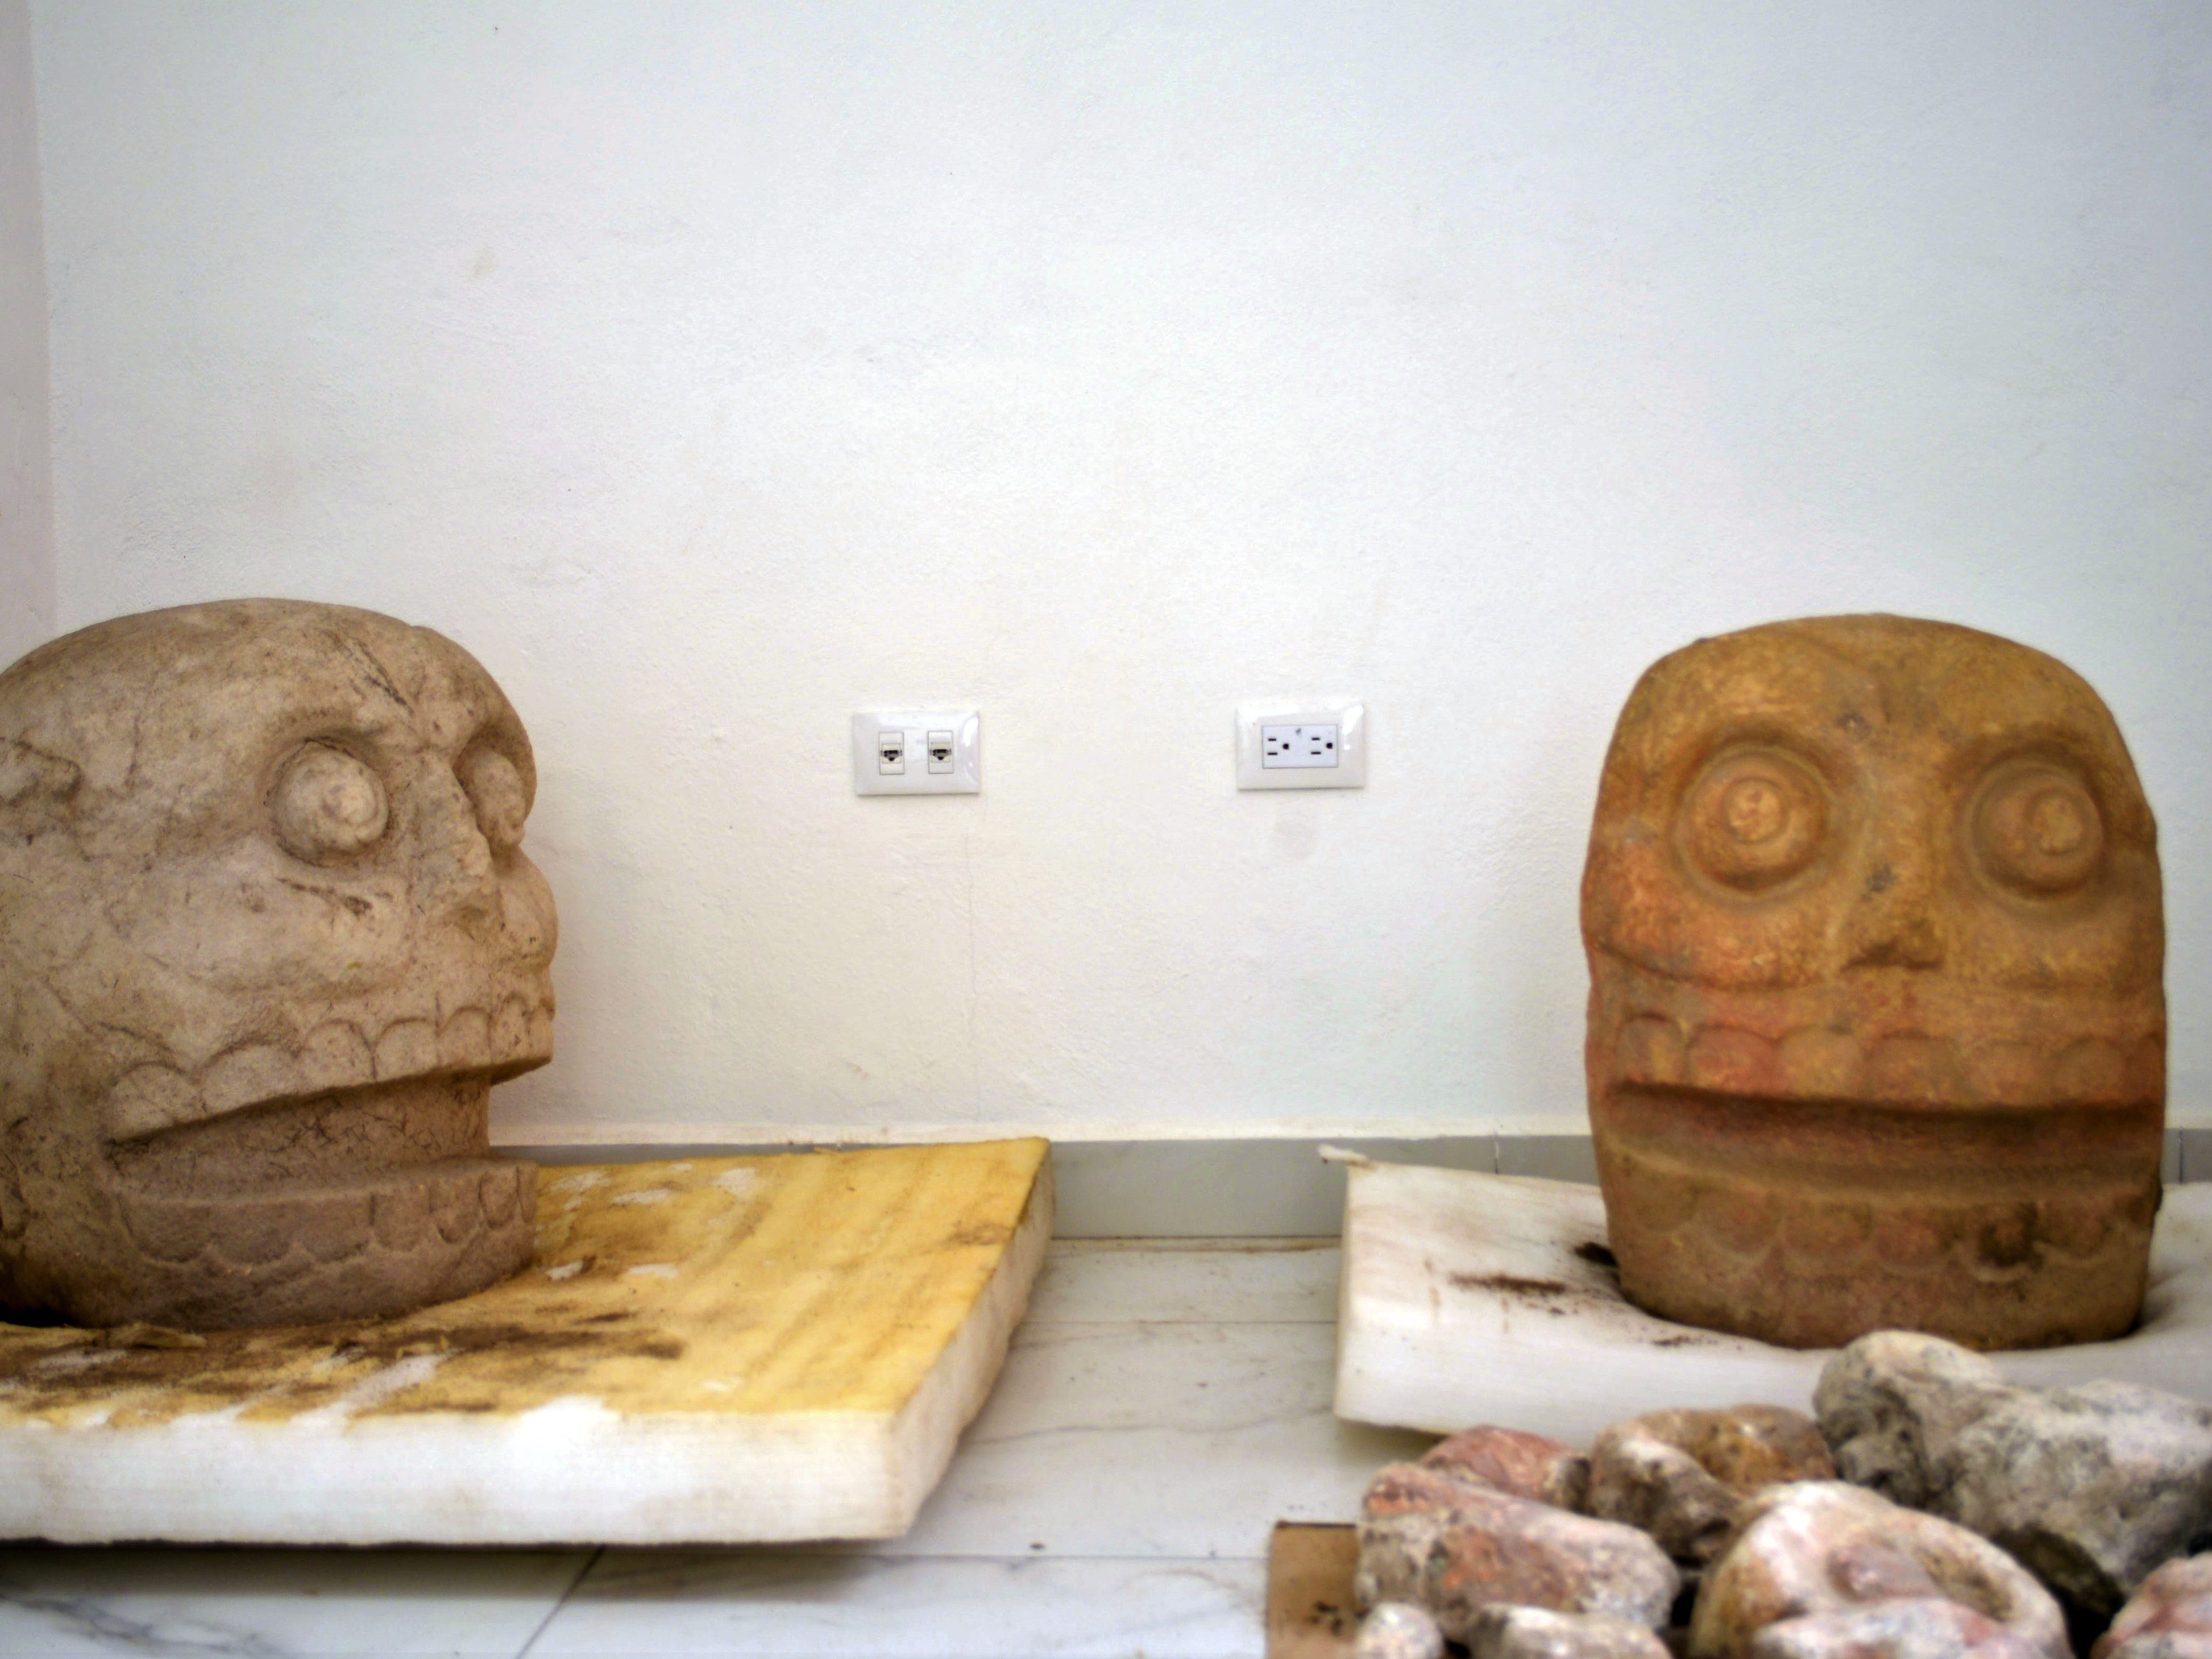 Handout picture released by Mexico's National Institute of Anthropology and History (INAH) taken on October 12, 2018 showing two sculptures dedicated to the pre-Hispanic fertility god Xipe Totec (The Flayed Lord), found at the first temple recently discovered of the deity in the archaeological site of Ndachjian-Tehuacan, in the Mexican state of Puebla.